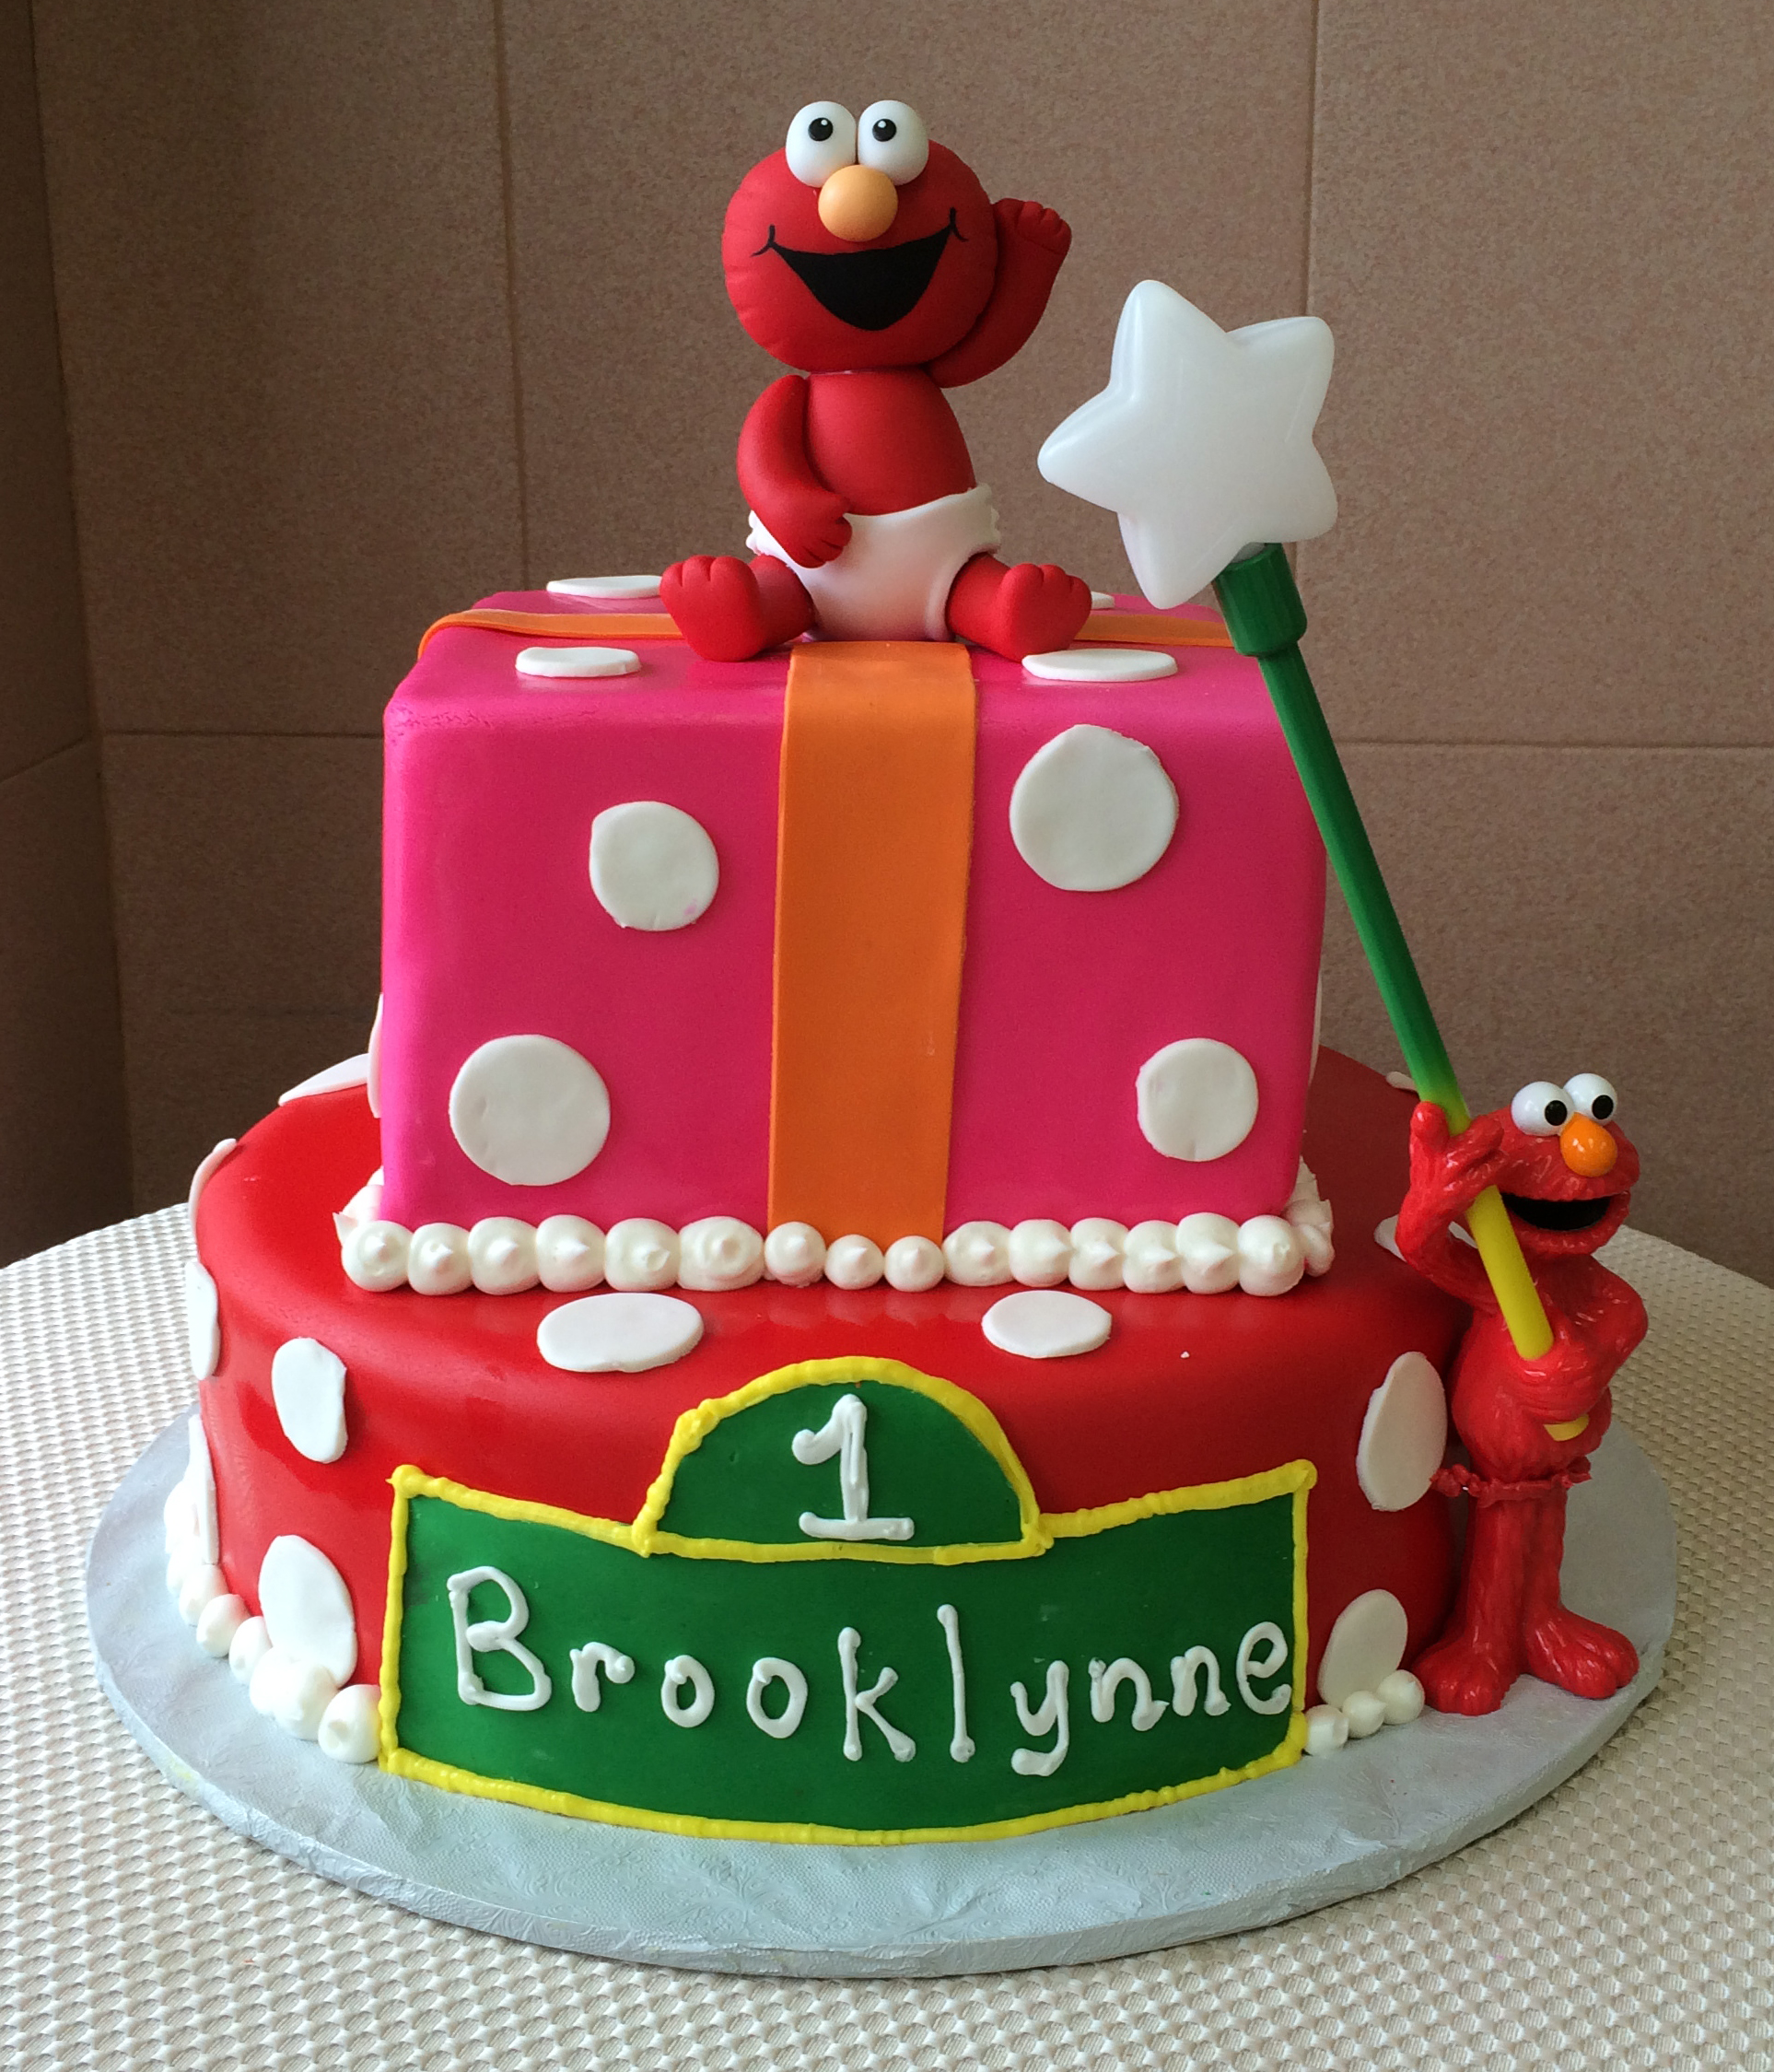 Colored Rolled Fondant, Round & Square, with Polka Dots, Stripes & Sesame Street Logo. Figures not Available.